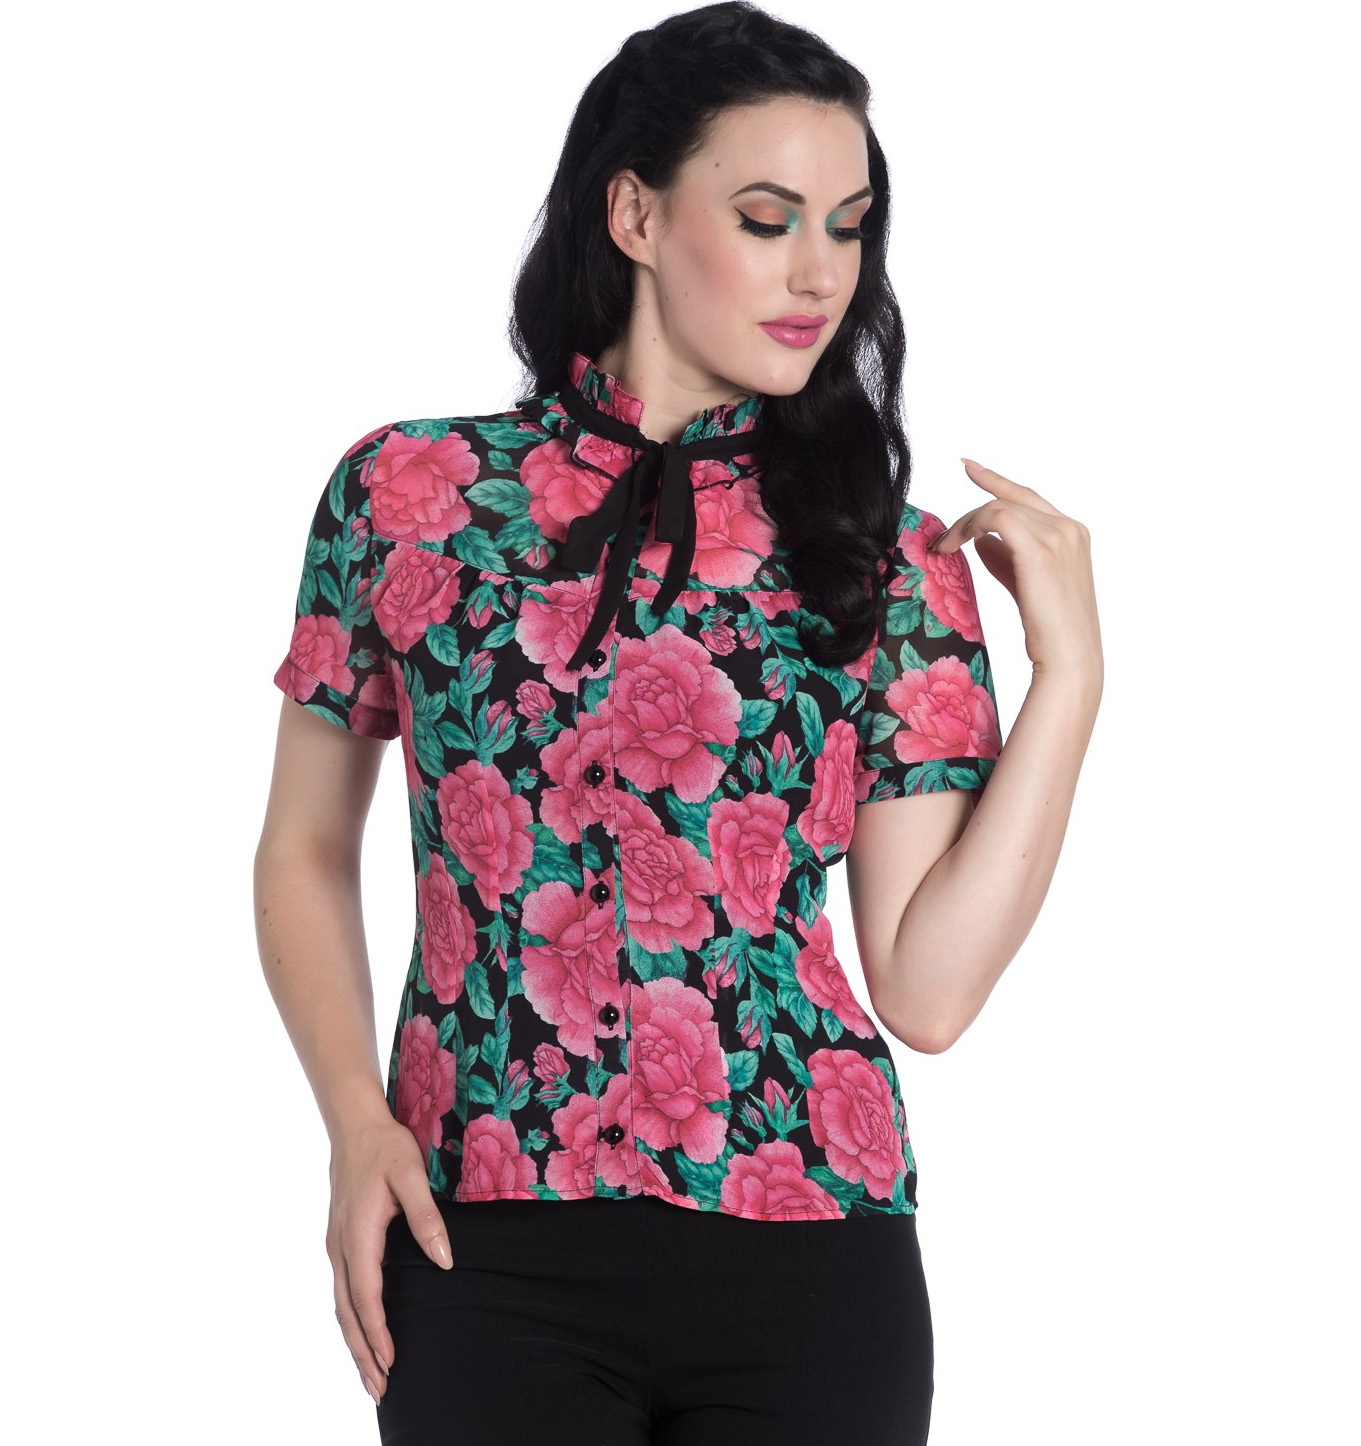 Hell-Bunny-Shirt-Top-Flowers-Roses-EDEN-ROSE-Black-Pink-Blouse-All-Sizes thumbnail 19